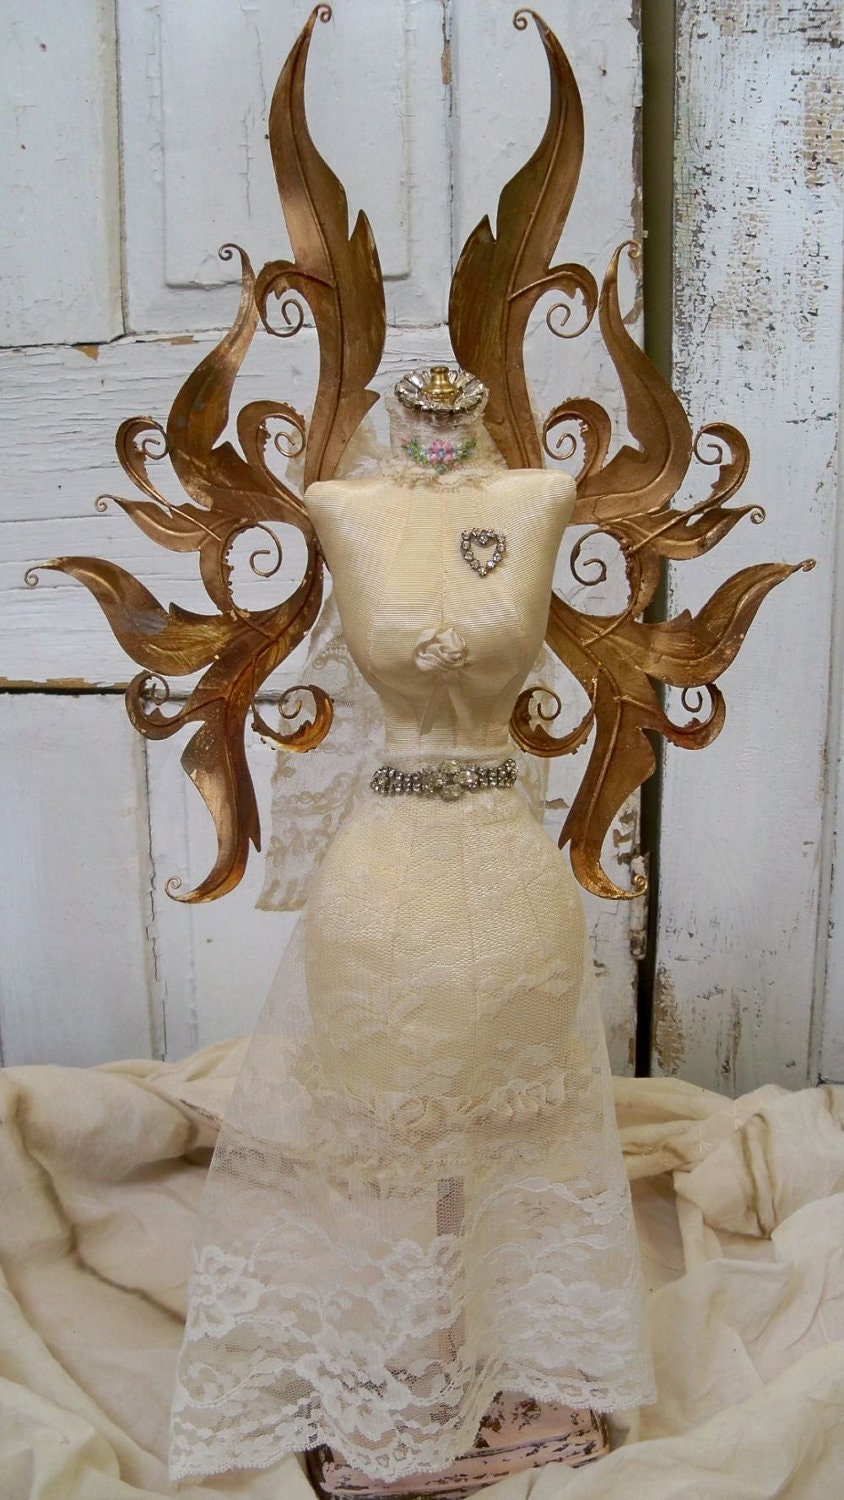 Shabby Chic Table Top Dress Form Rusty Ornate Angel Wings Home